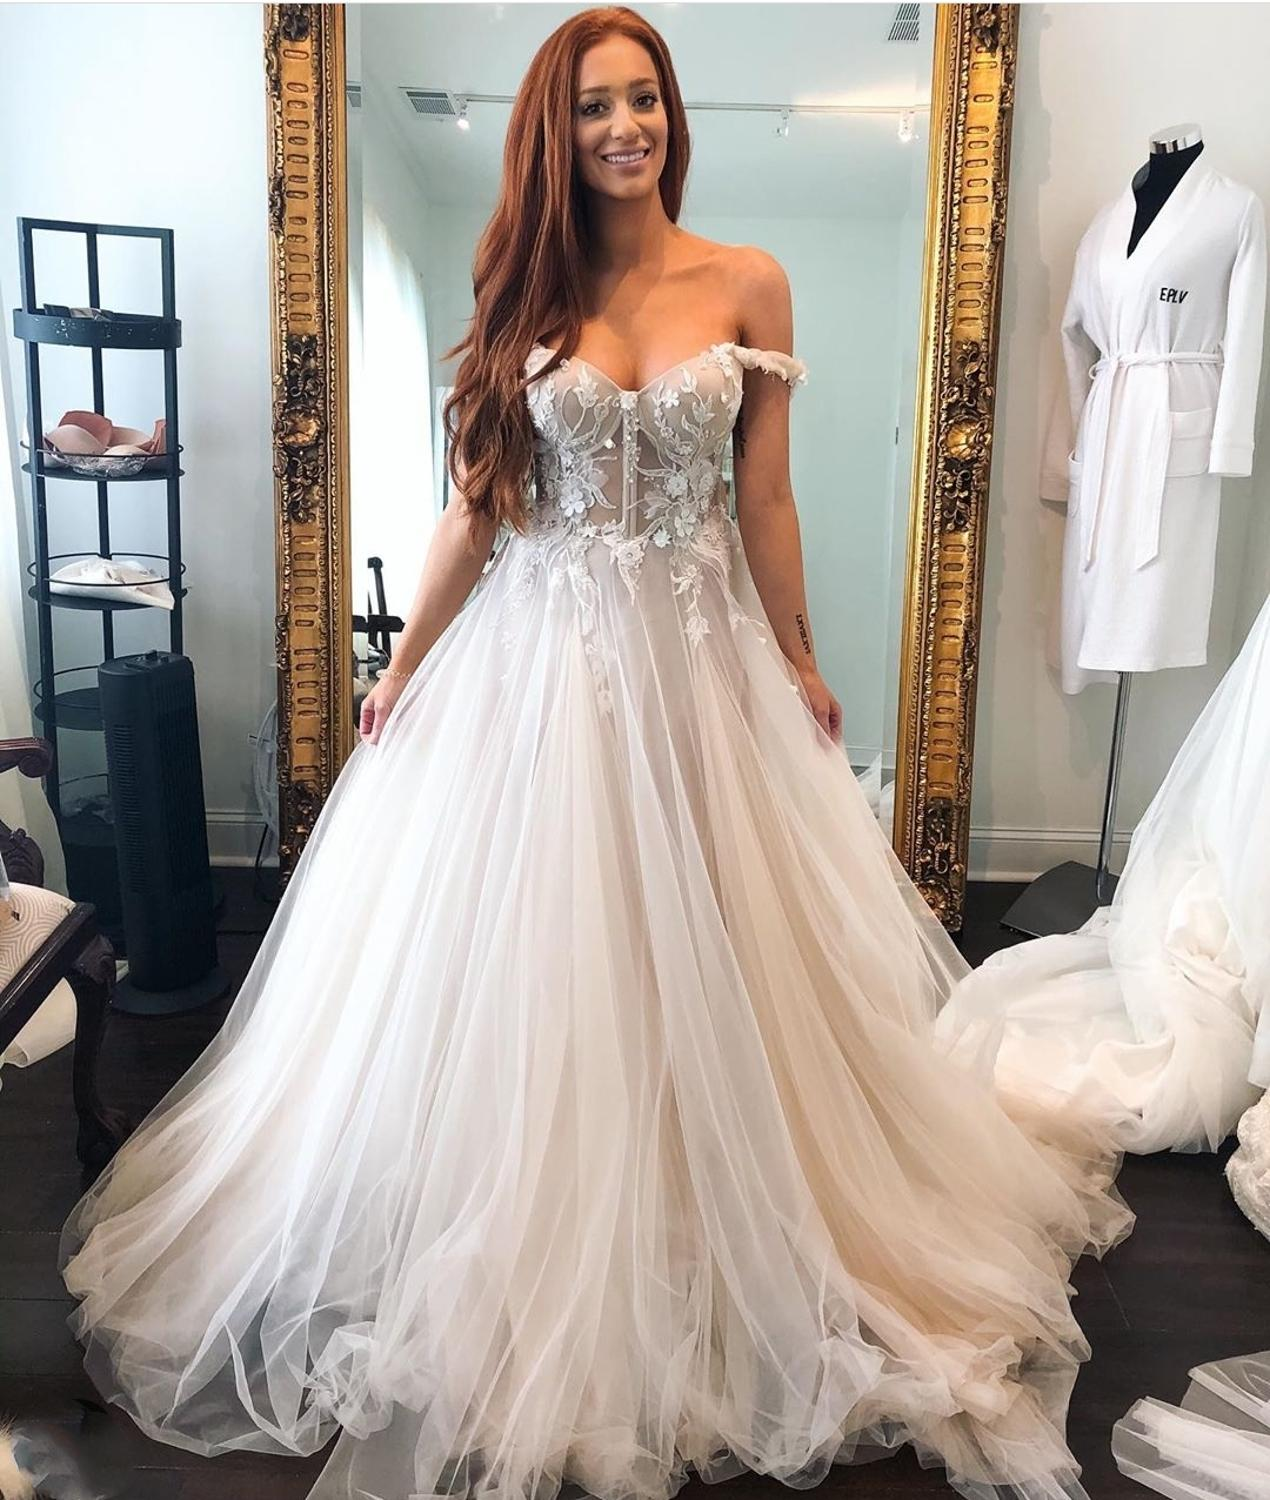 wedding : Off Shoulder Wedding dress 2021  With Sleeve A-Line Lace Appliques Sweetheart Brilliant Court TrianWomen Brides Tulle Gorgeous